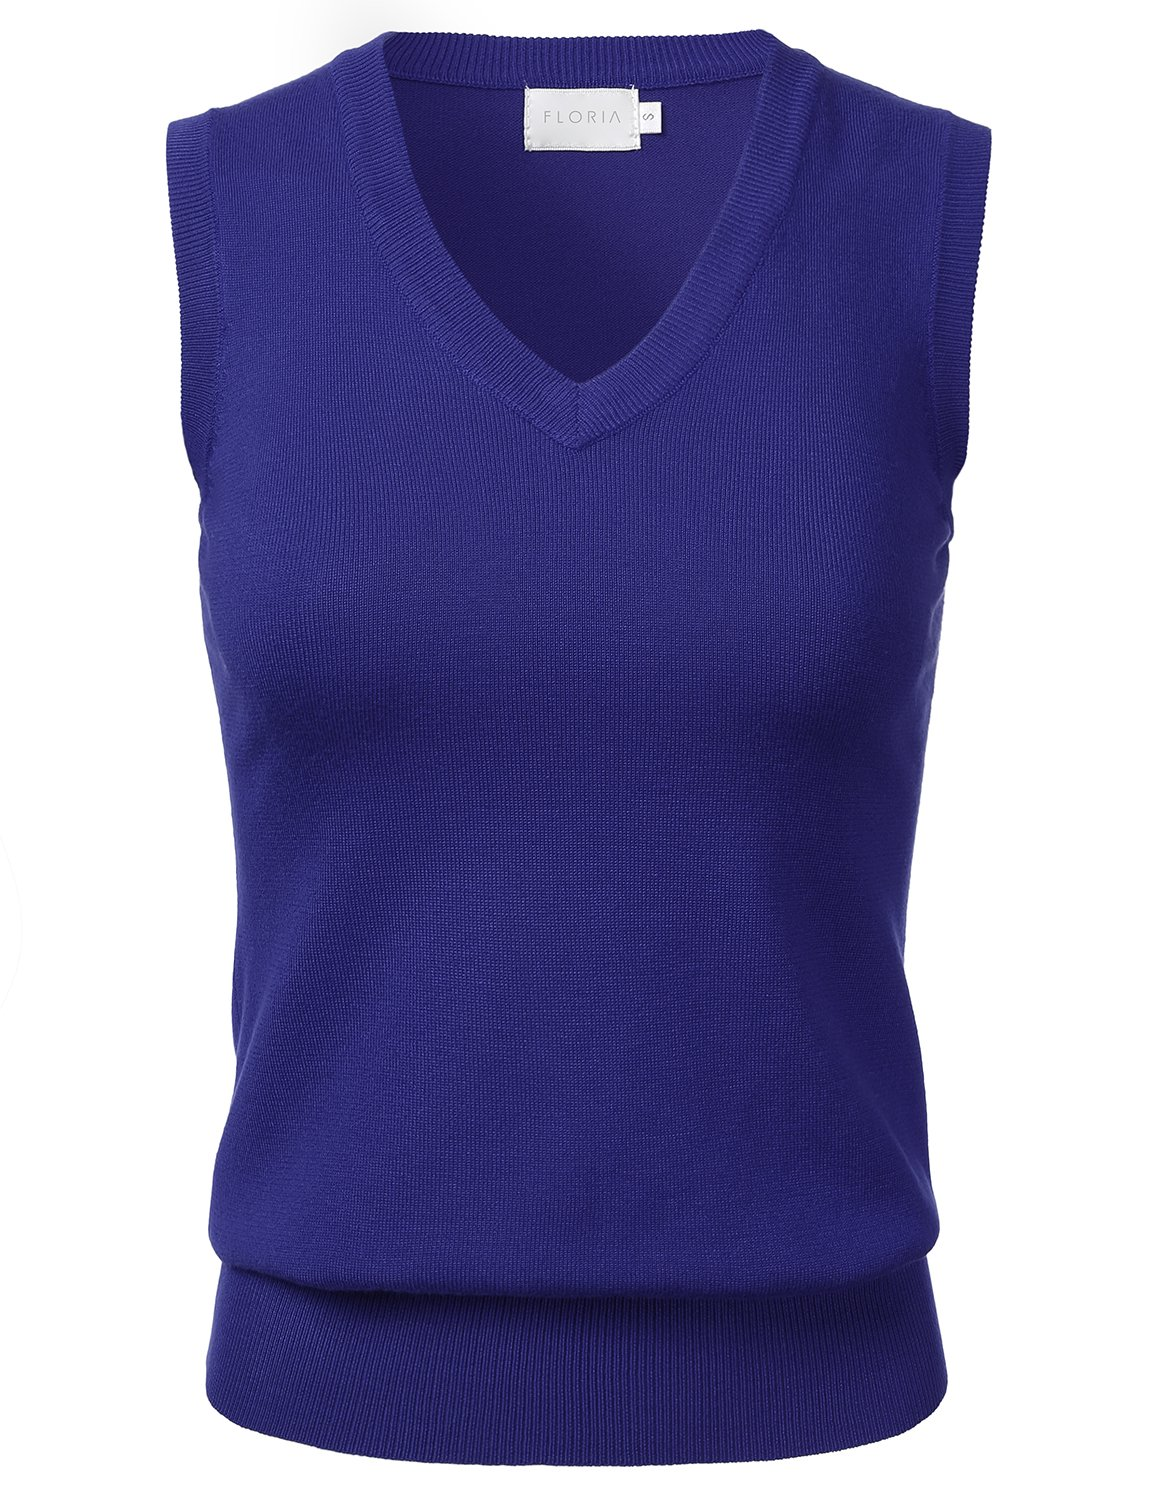 FLORIA Women Solid Clssic V-Neck Sleeveless Pullover Sweater Vest Top Royalblue M